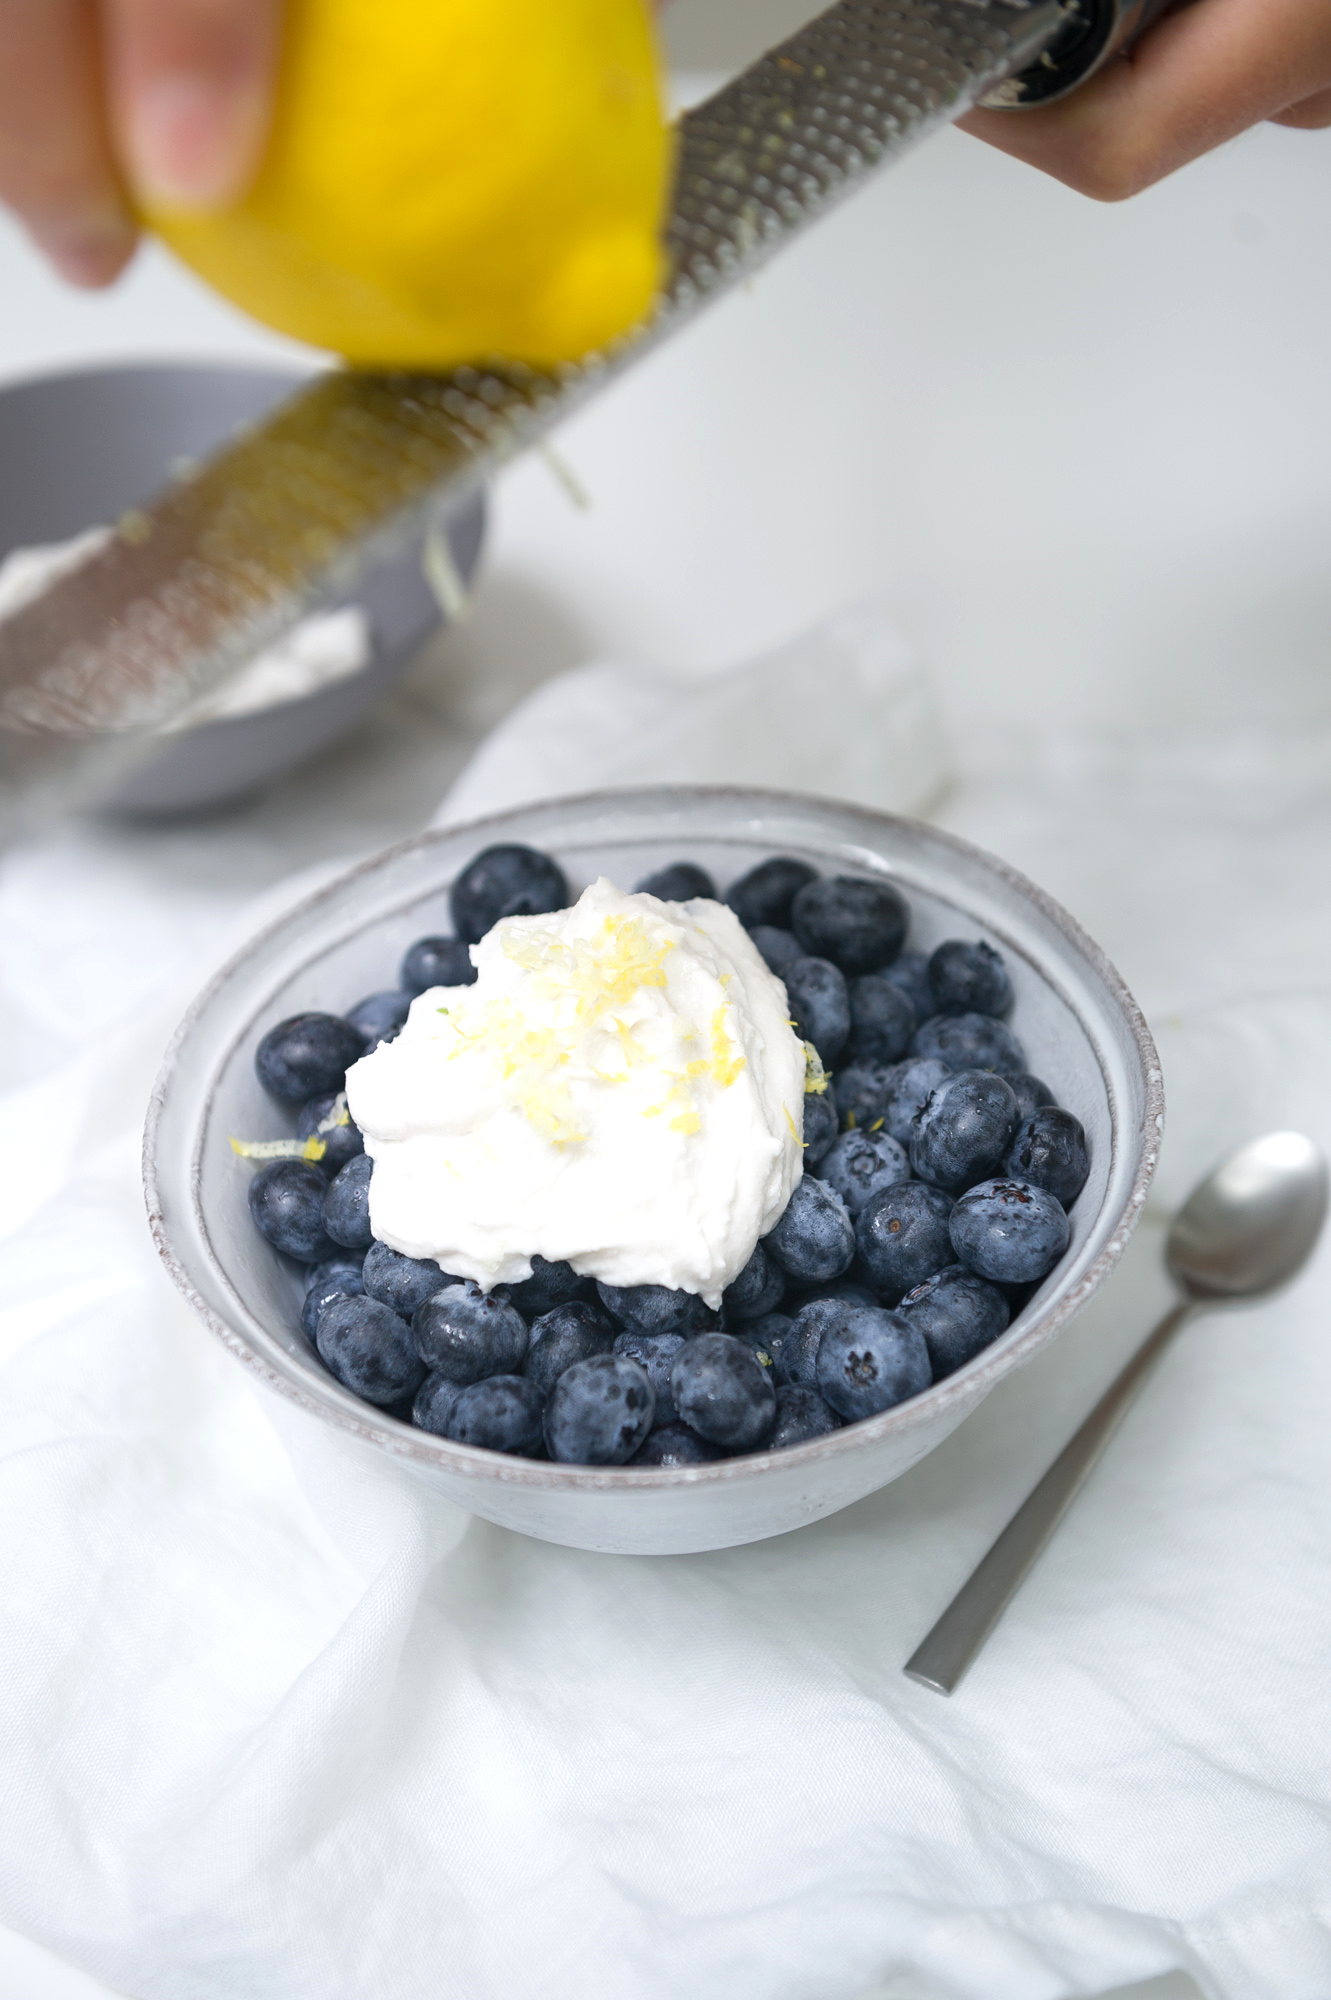 Blueberries with Whipped Coconut Cream and Lemon Zest. Raw, Vegan.